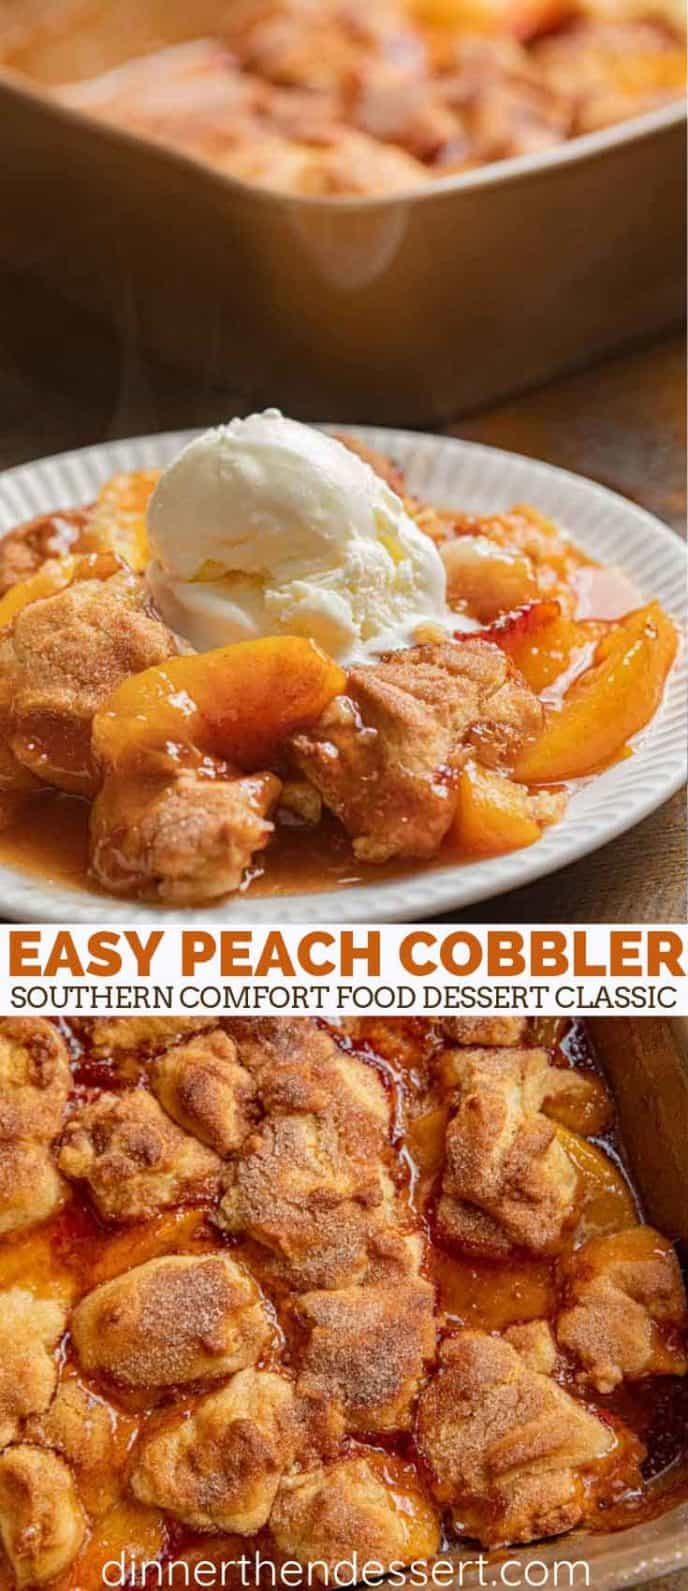 Southern peach cobbler in a pan and on a white plate.